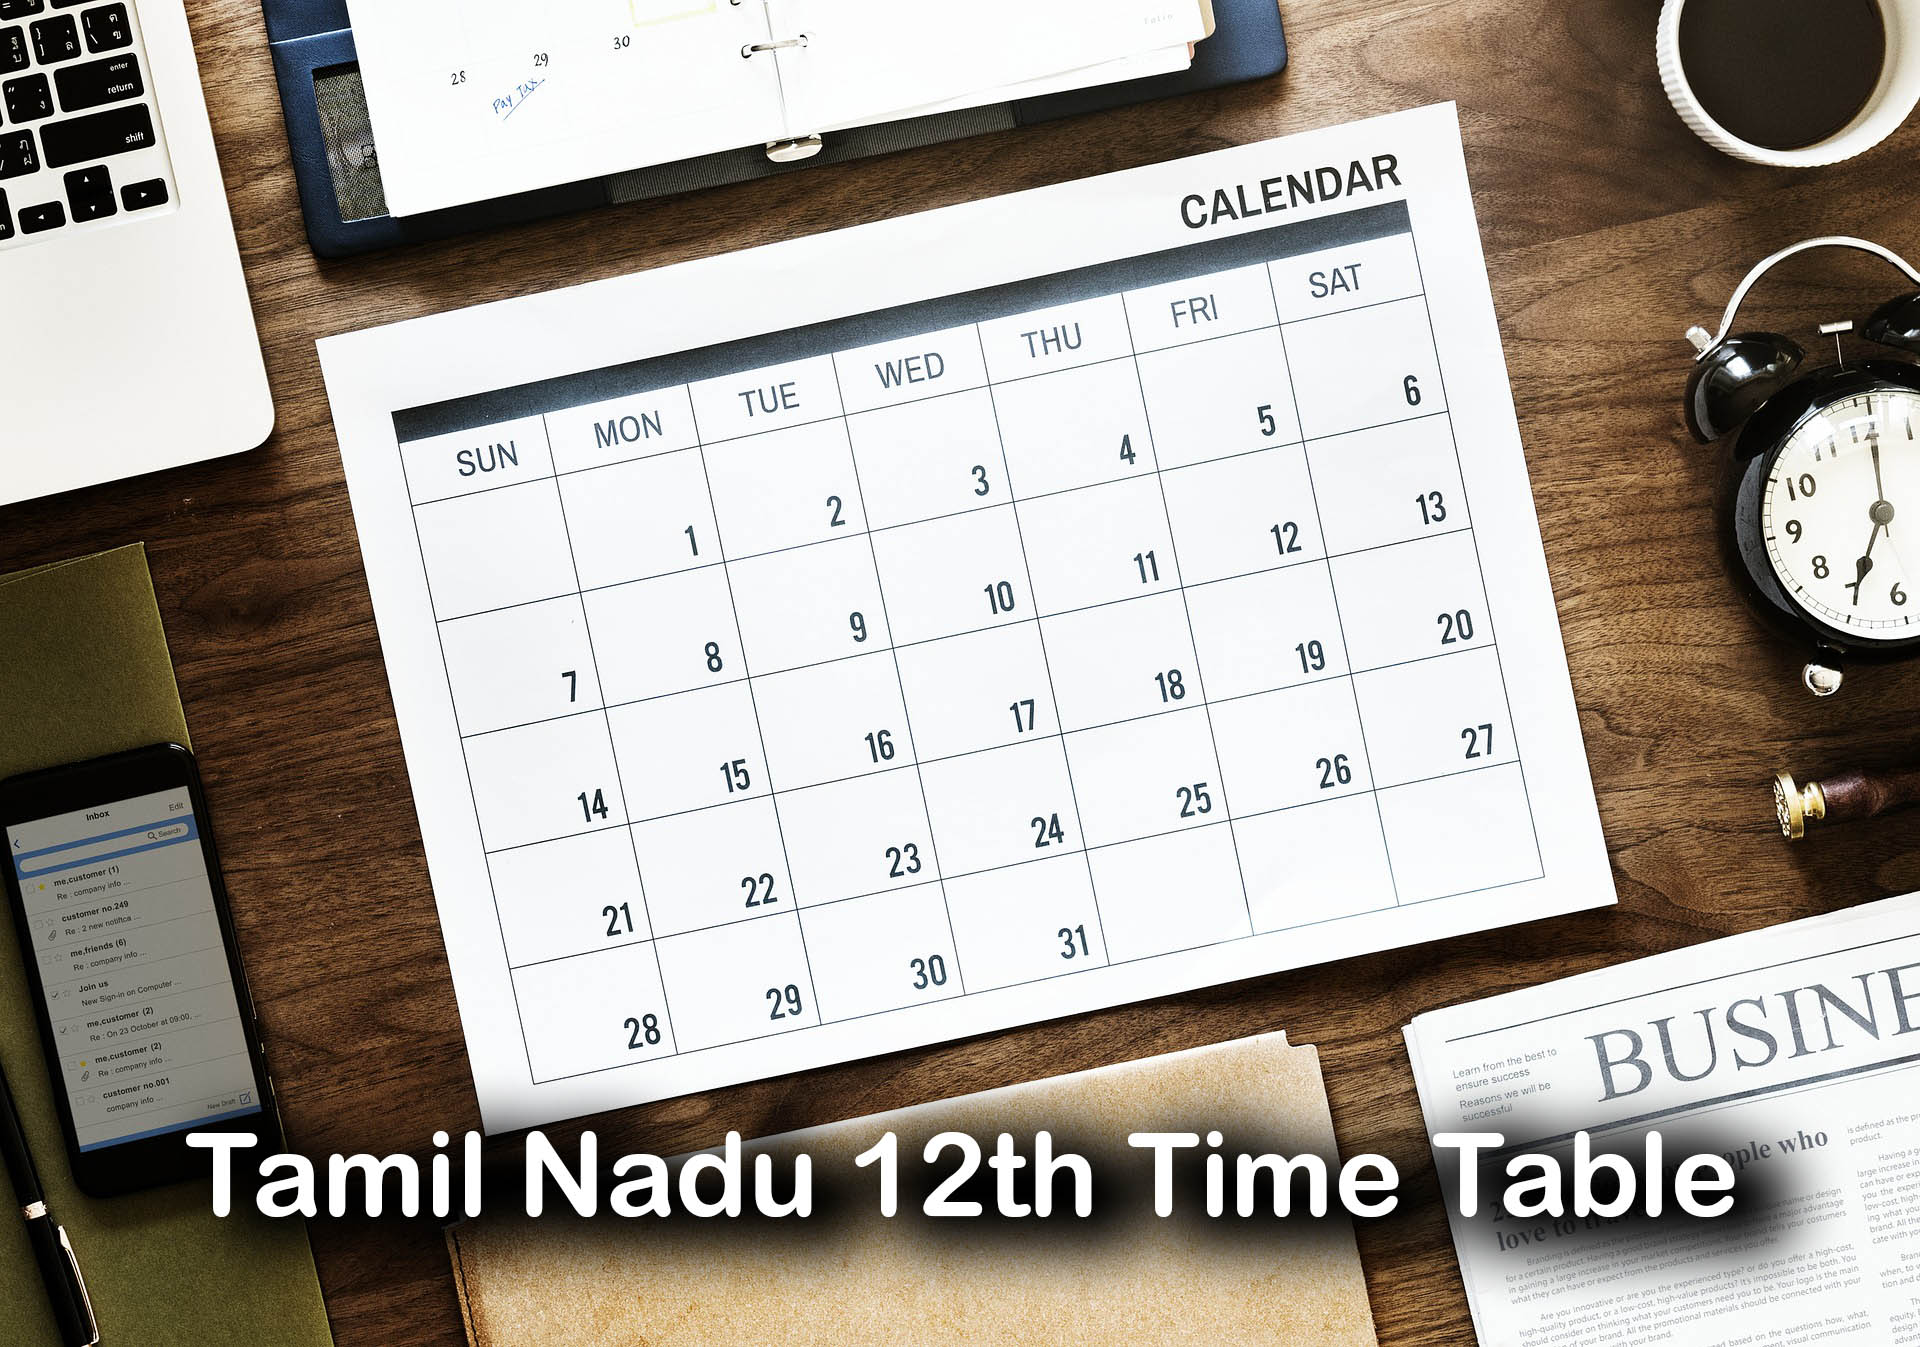 Tamil Nadu 12th Time Table